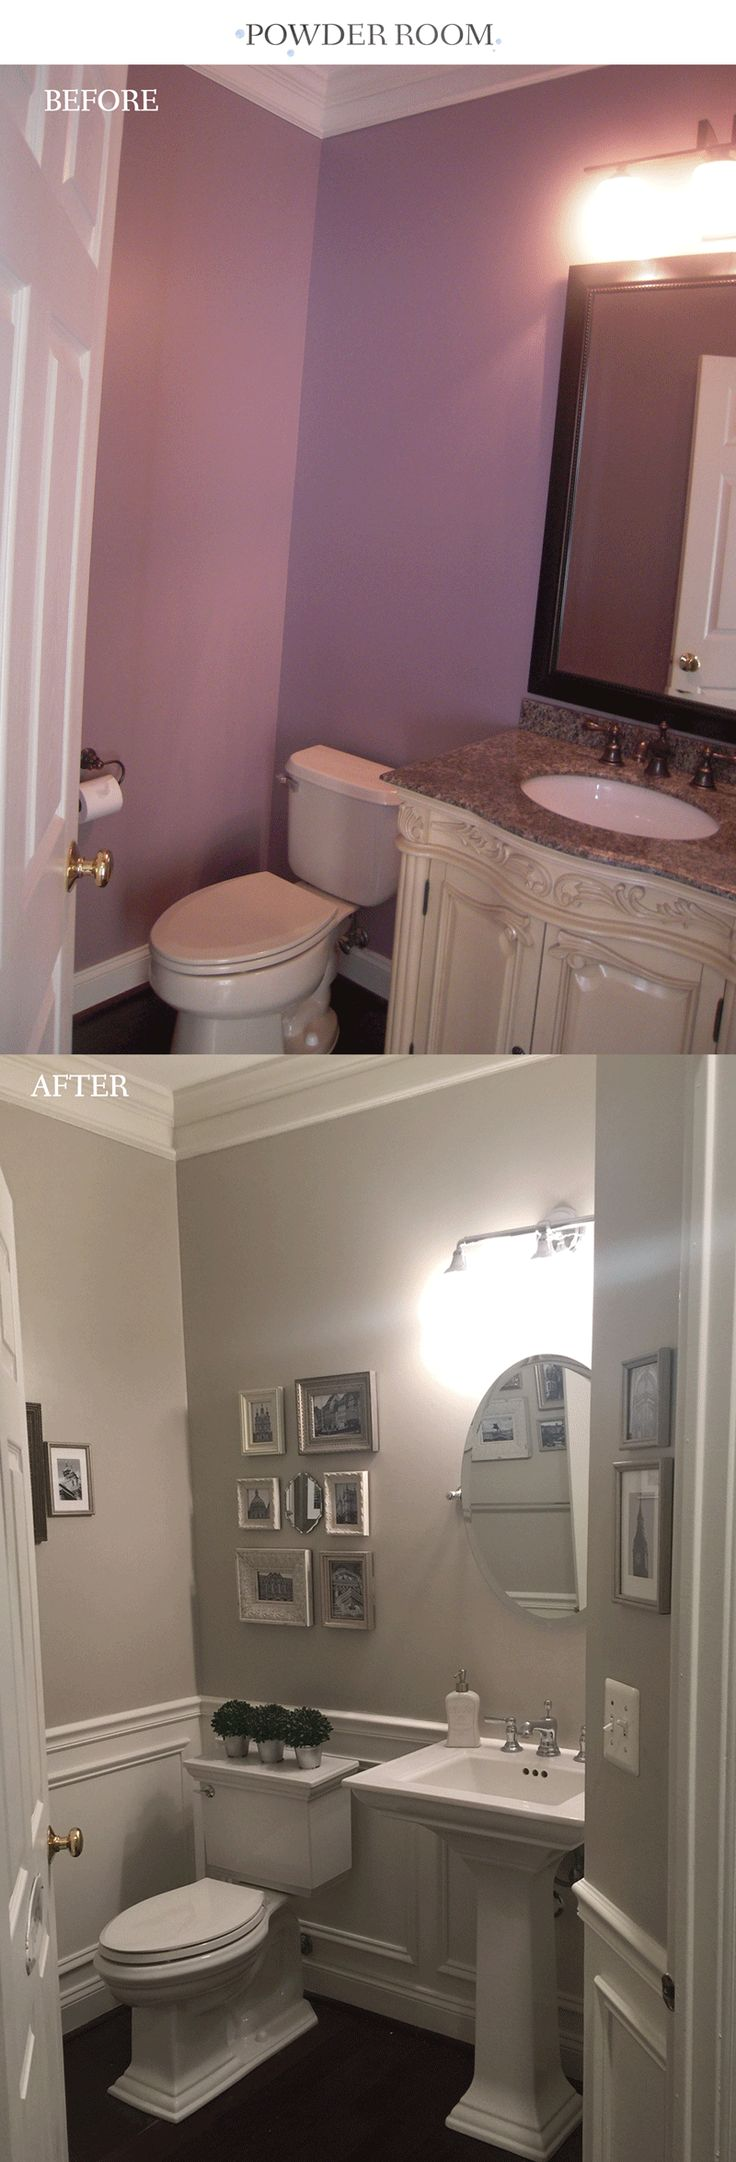 Powder room before and after wainscoting and makeover. The gray paint is Benjamin Moore Revere Pewter.